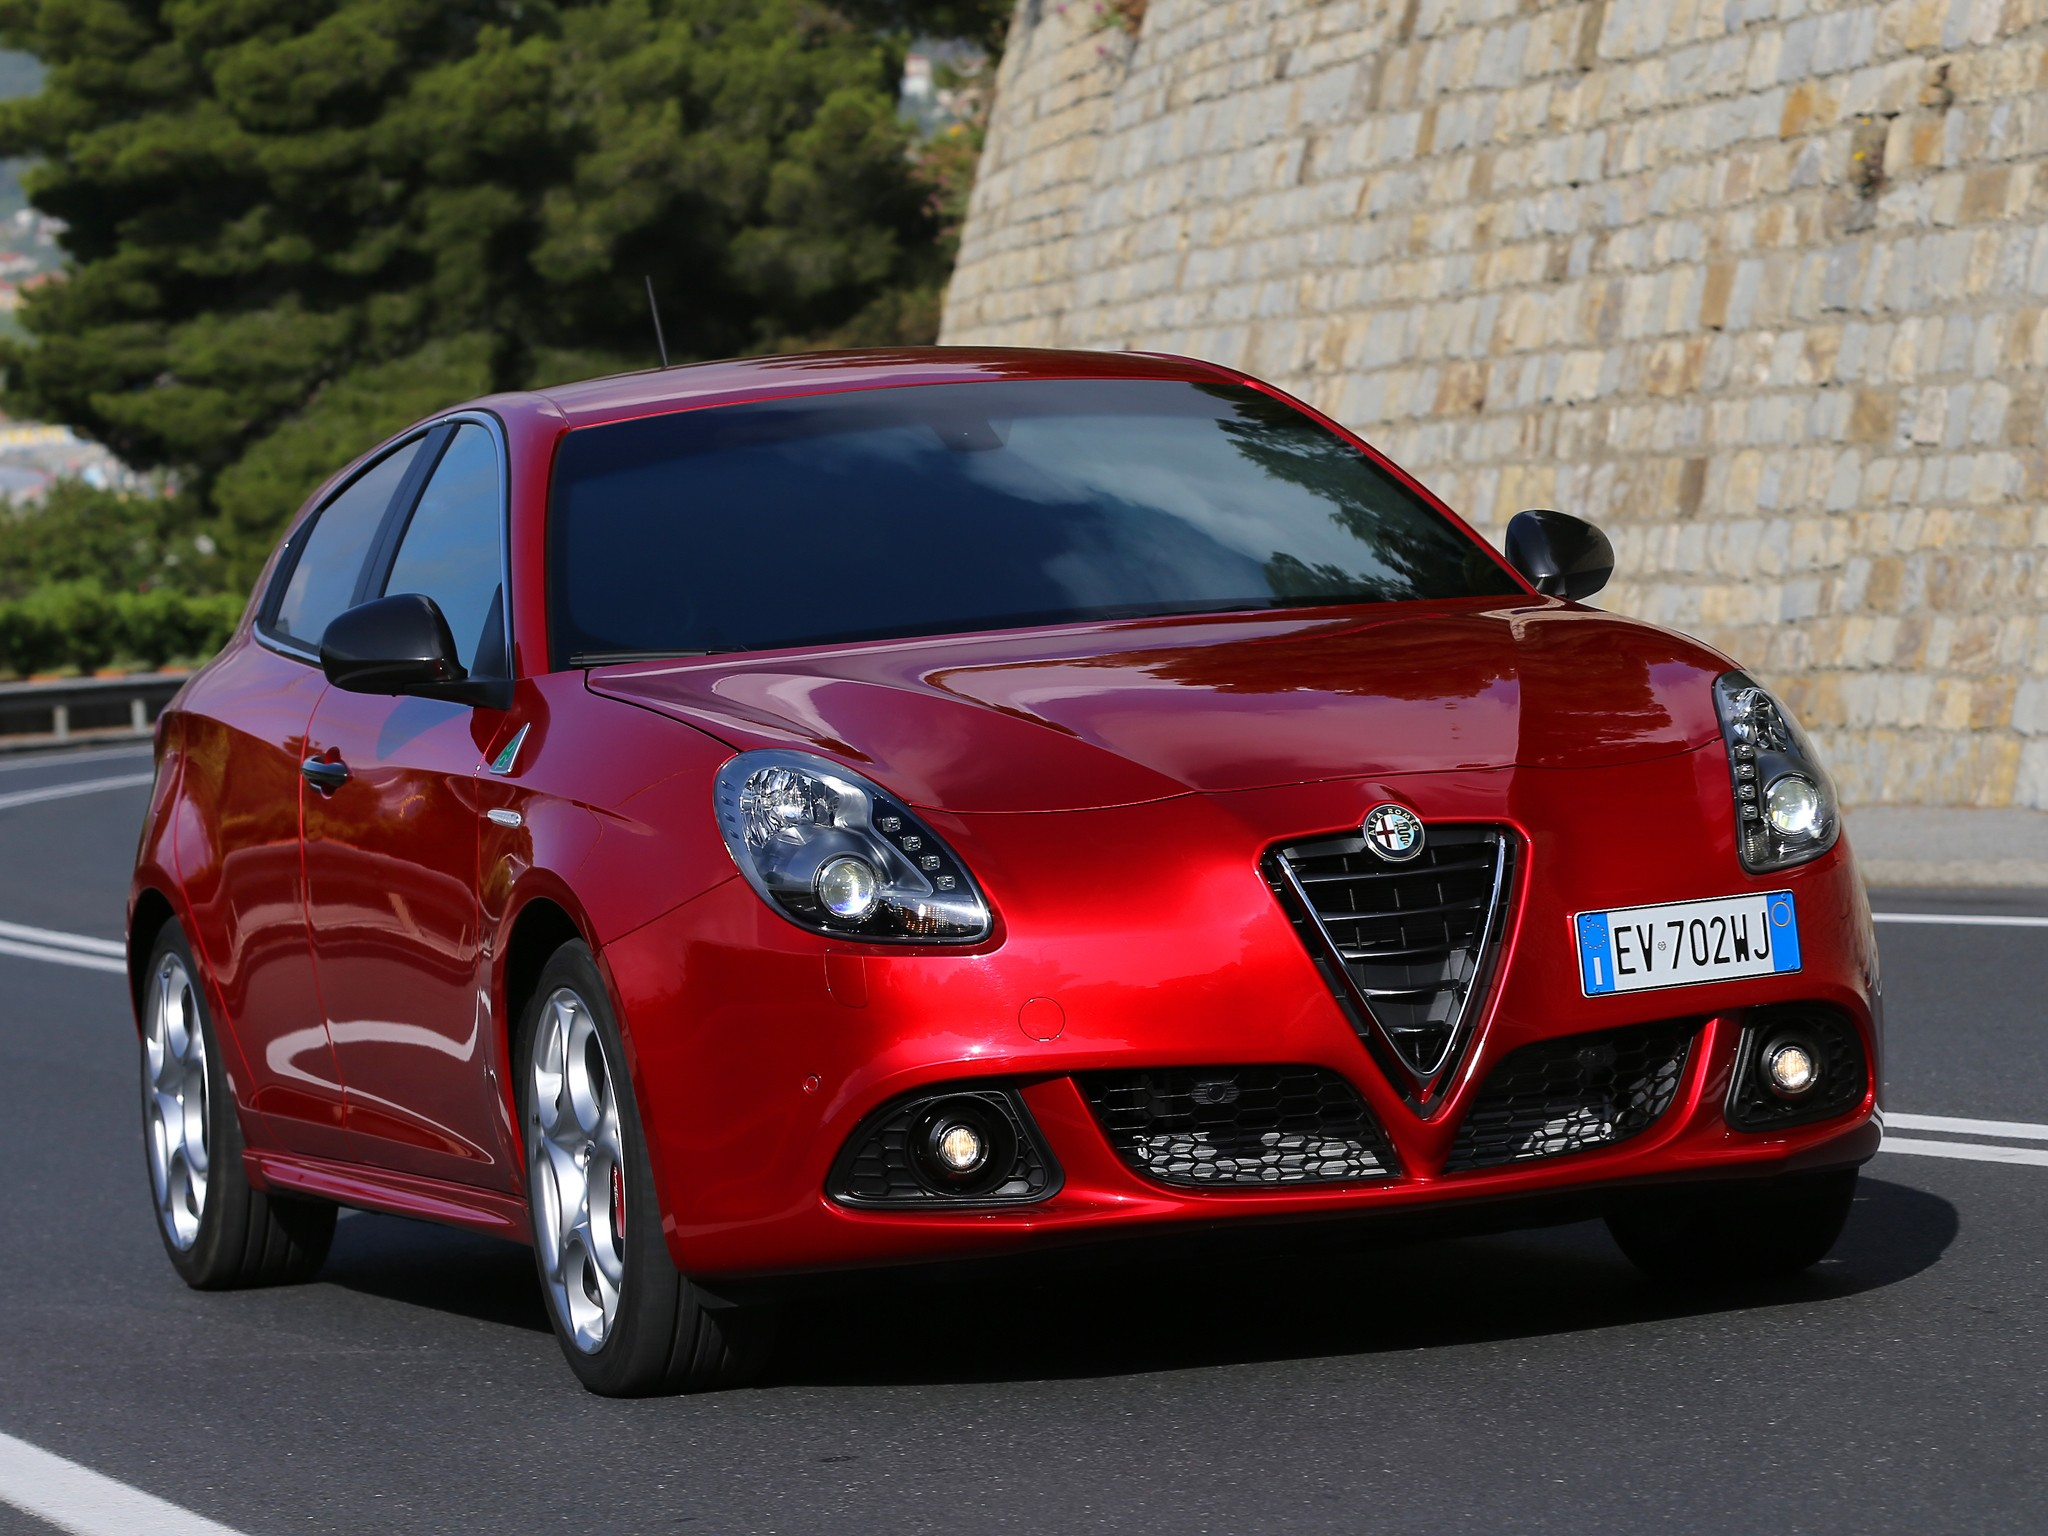 alfa romeo giulietta quadrifoglio verde specs photos 2011 2012 2013 2014 2015 2016. Black Bedroom Furniture Sets. Home Design Ideas